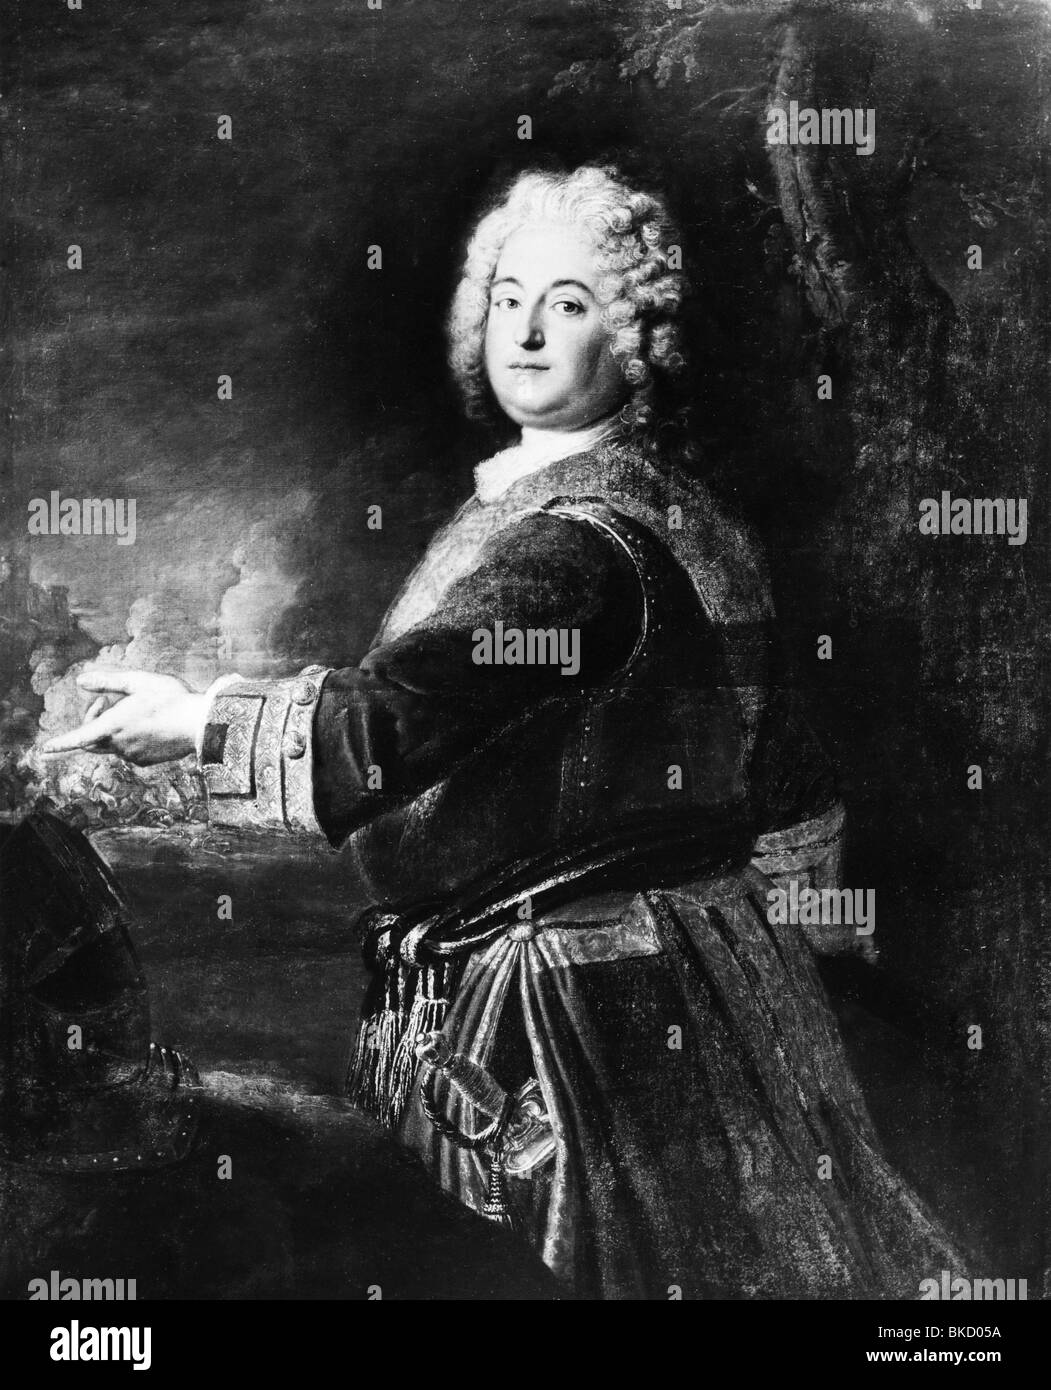 Christian Ludwig, 14.3.1677 - 3.9.1734, margrave of Brandenburg-Schwedt, half length, painting by Antoine , Additional - Stock Image